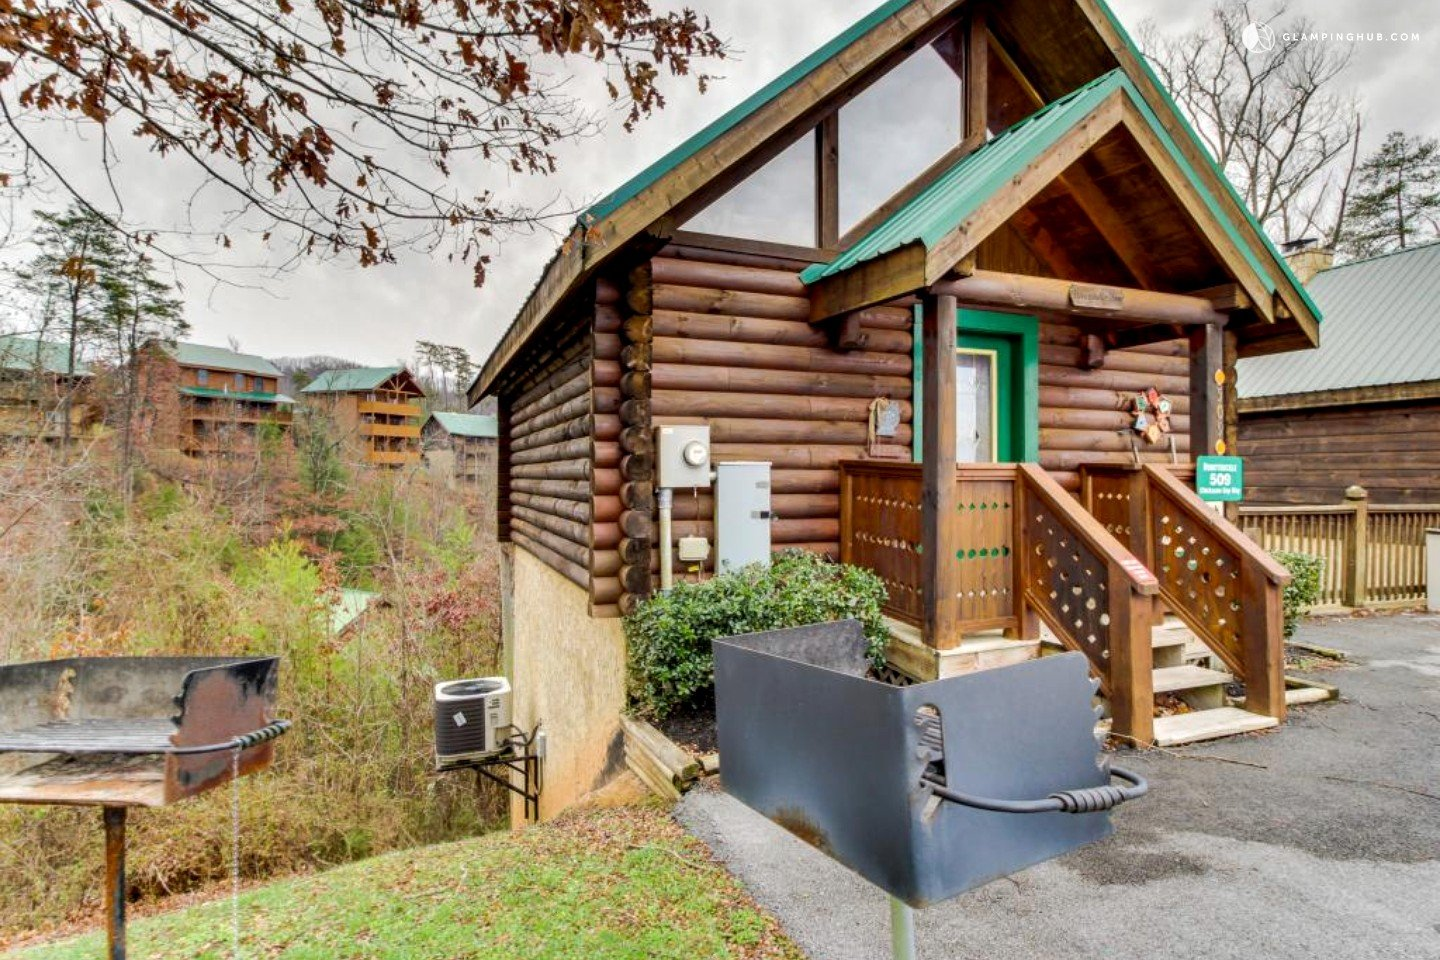 Cozy cabin in pigeon forge tennessee 4 bedroom cabins in pigeon forge tn